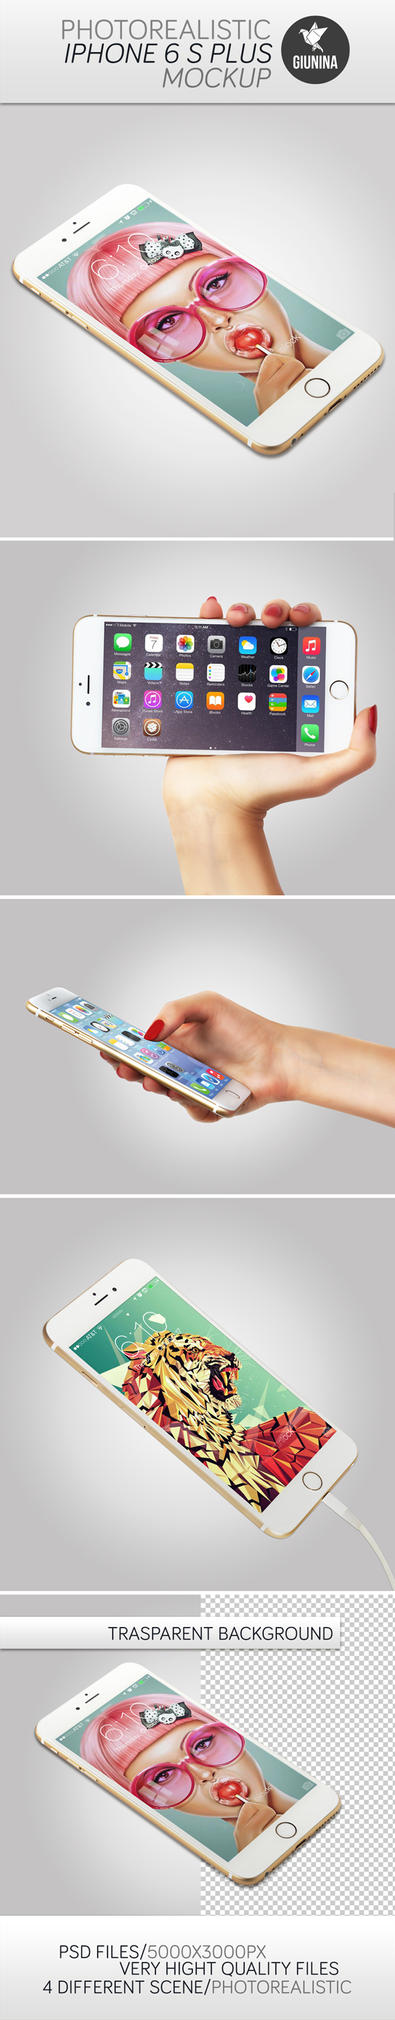 iPhone 6 S Plus Photorealistic Mockup by Giunina